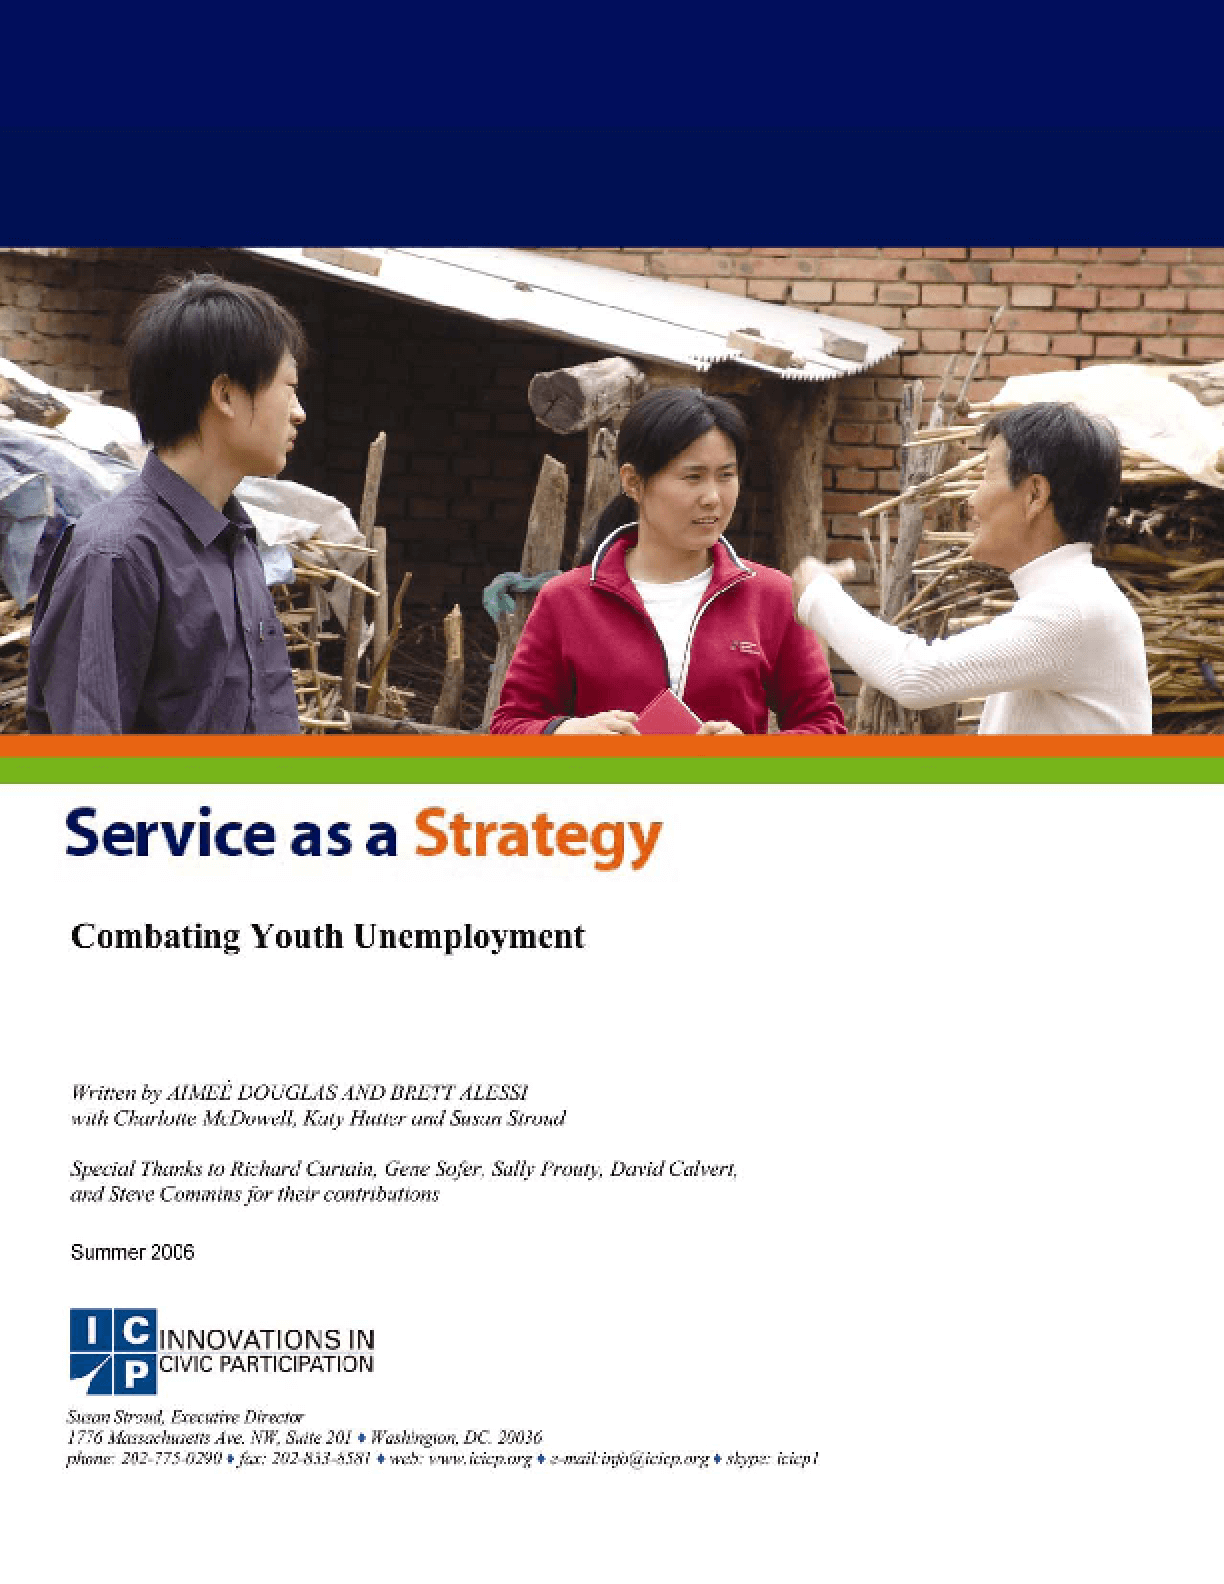 Service as a Strategy: Combating Youth Unemployment